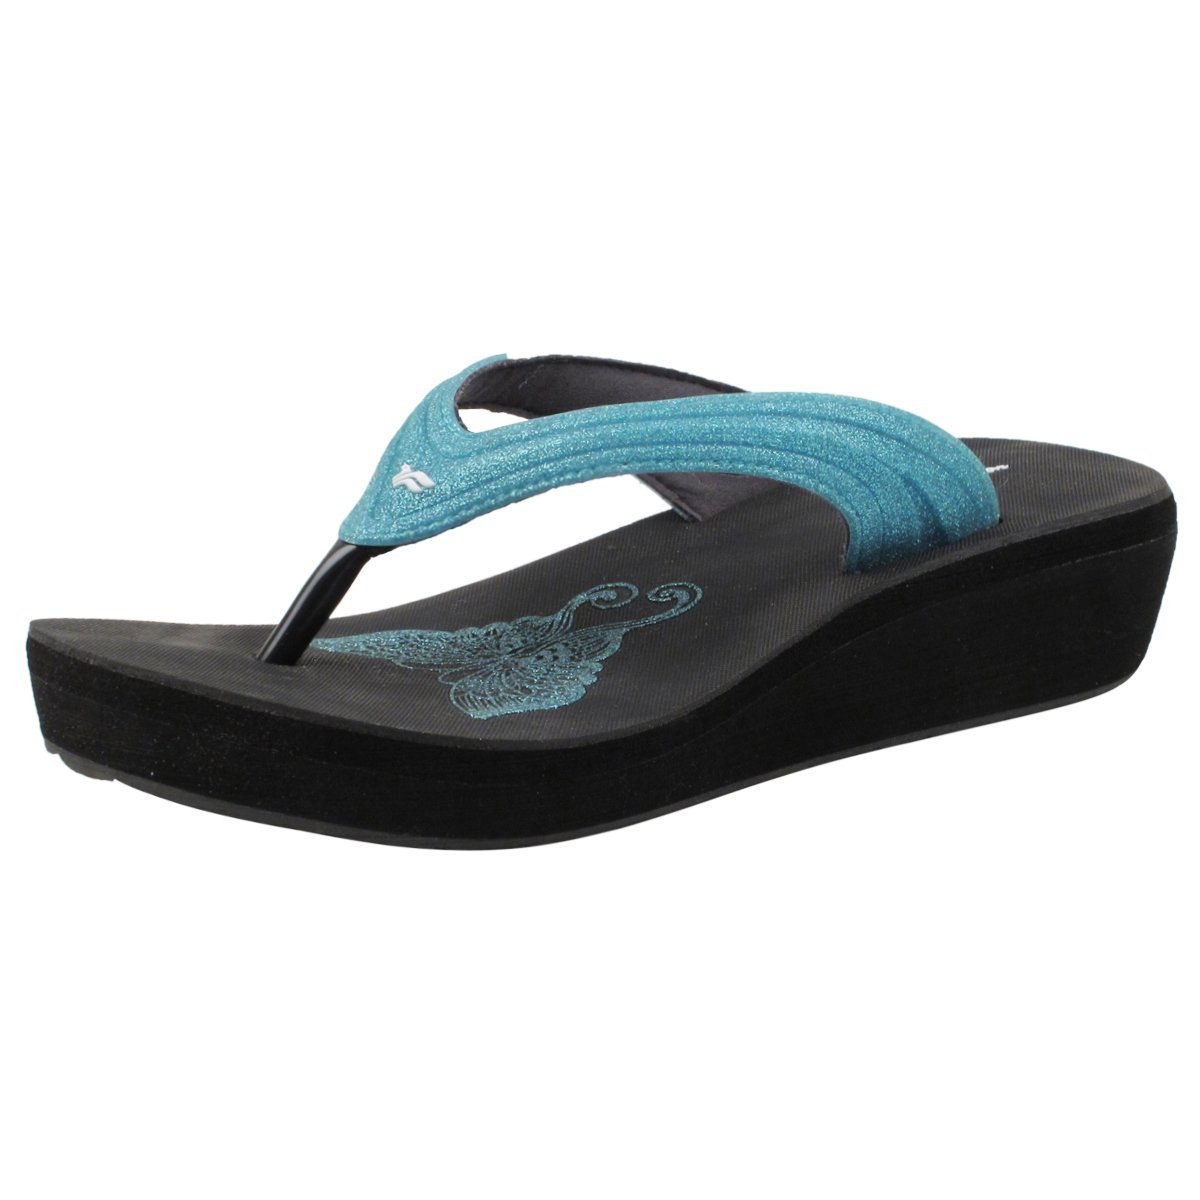 Gold Pigeon Shoes GP Signature Women Flip Flop: 8523 Lt. Blue, EU37